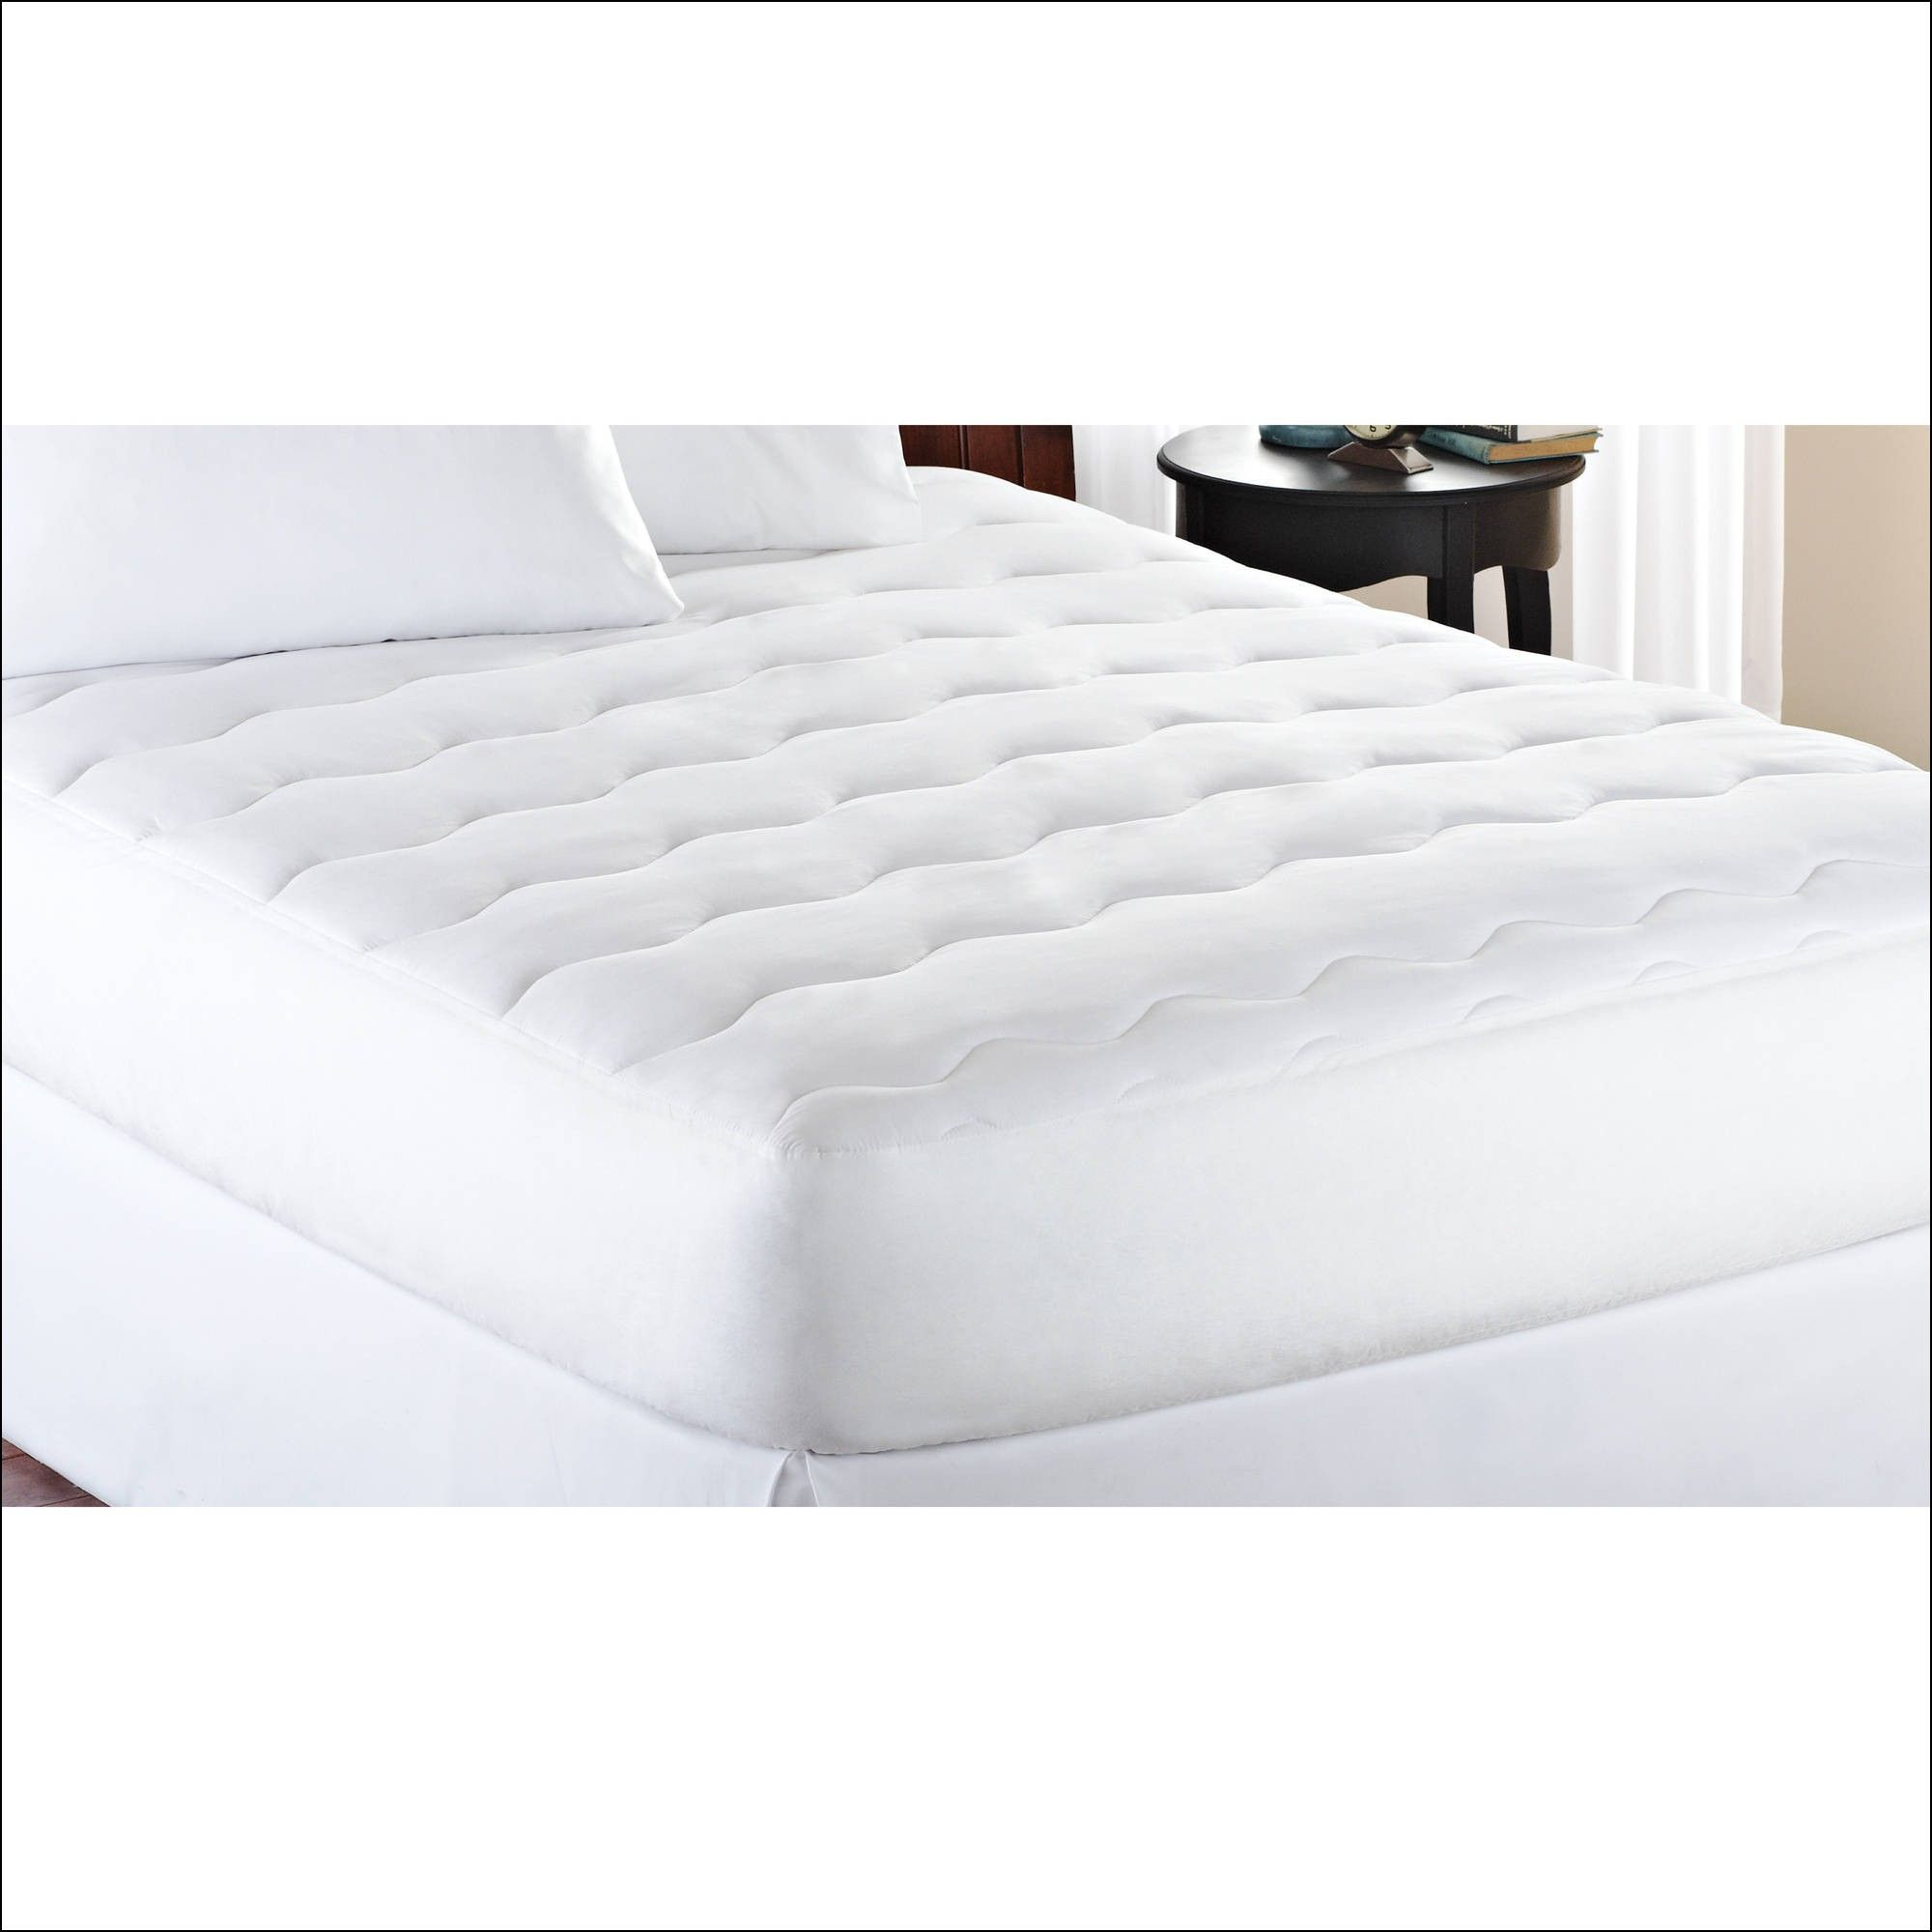 hotel pillows protectors fibre duvets pillow julian topper quilted mattress toppers cluster luxe enhancer